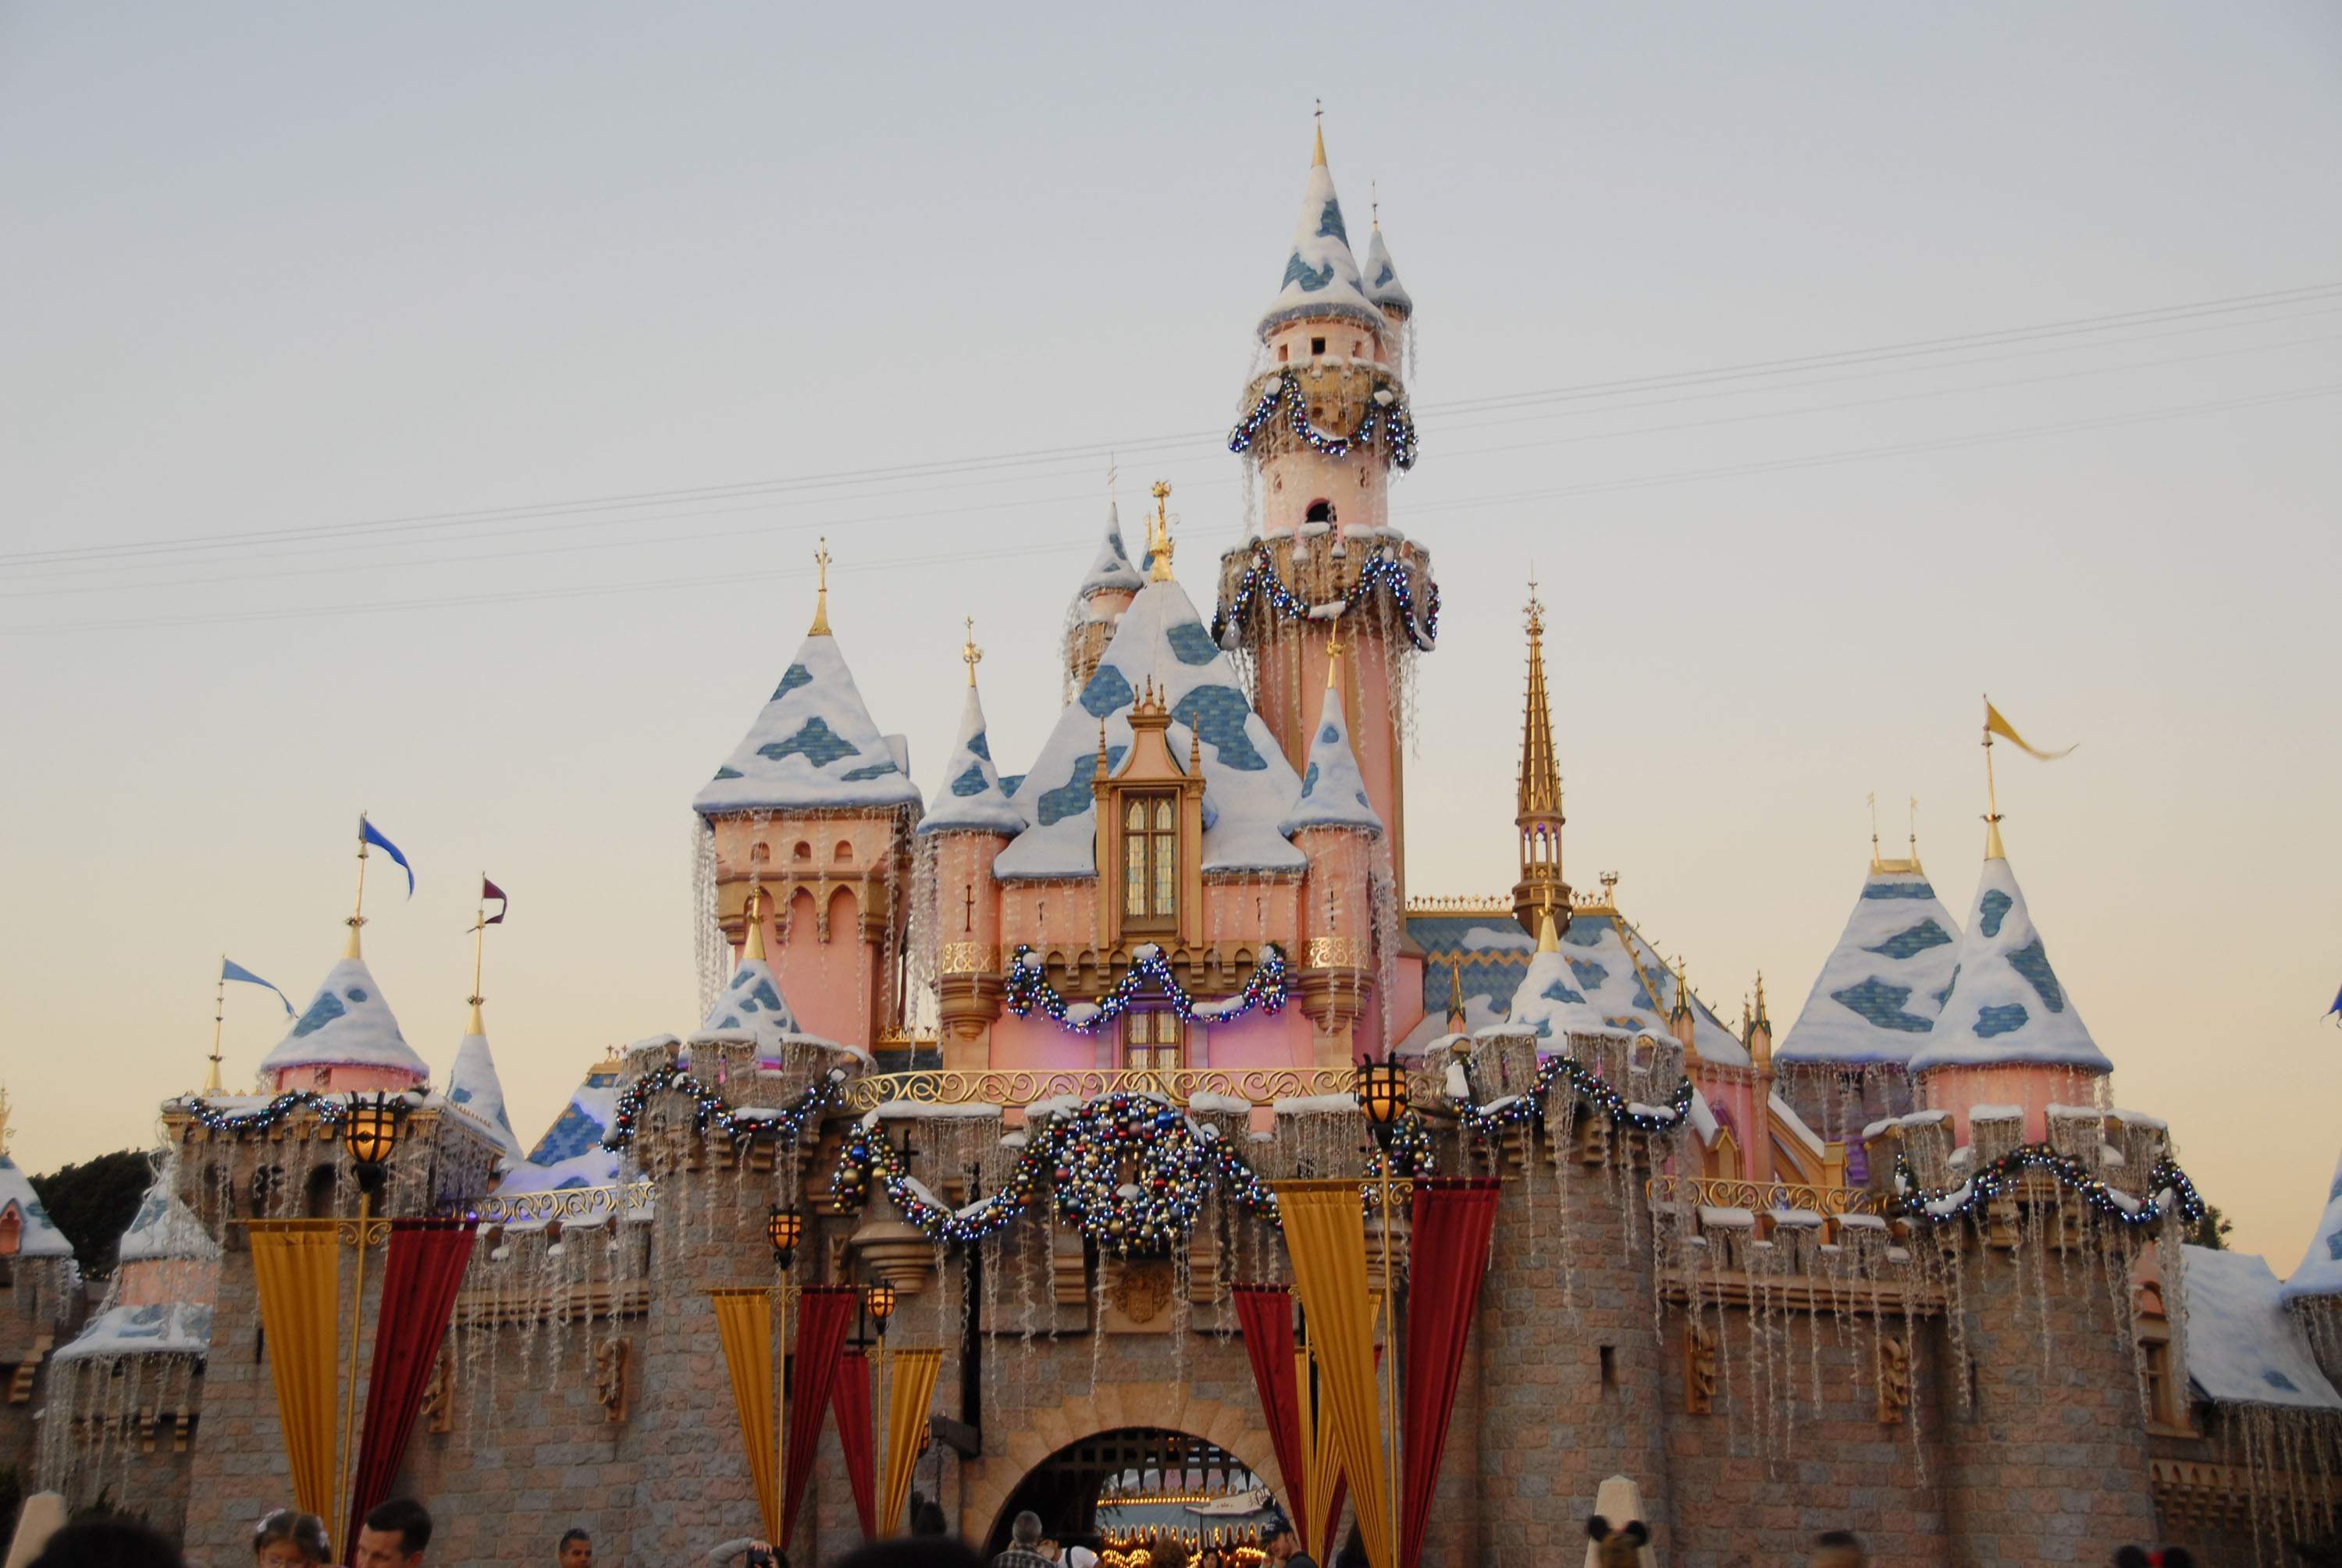 Disneyland photos showing a power outage that shut down rides - HelloGiggles